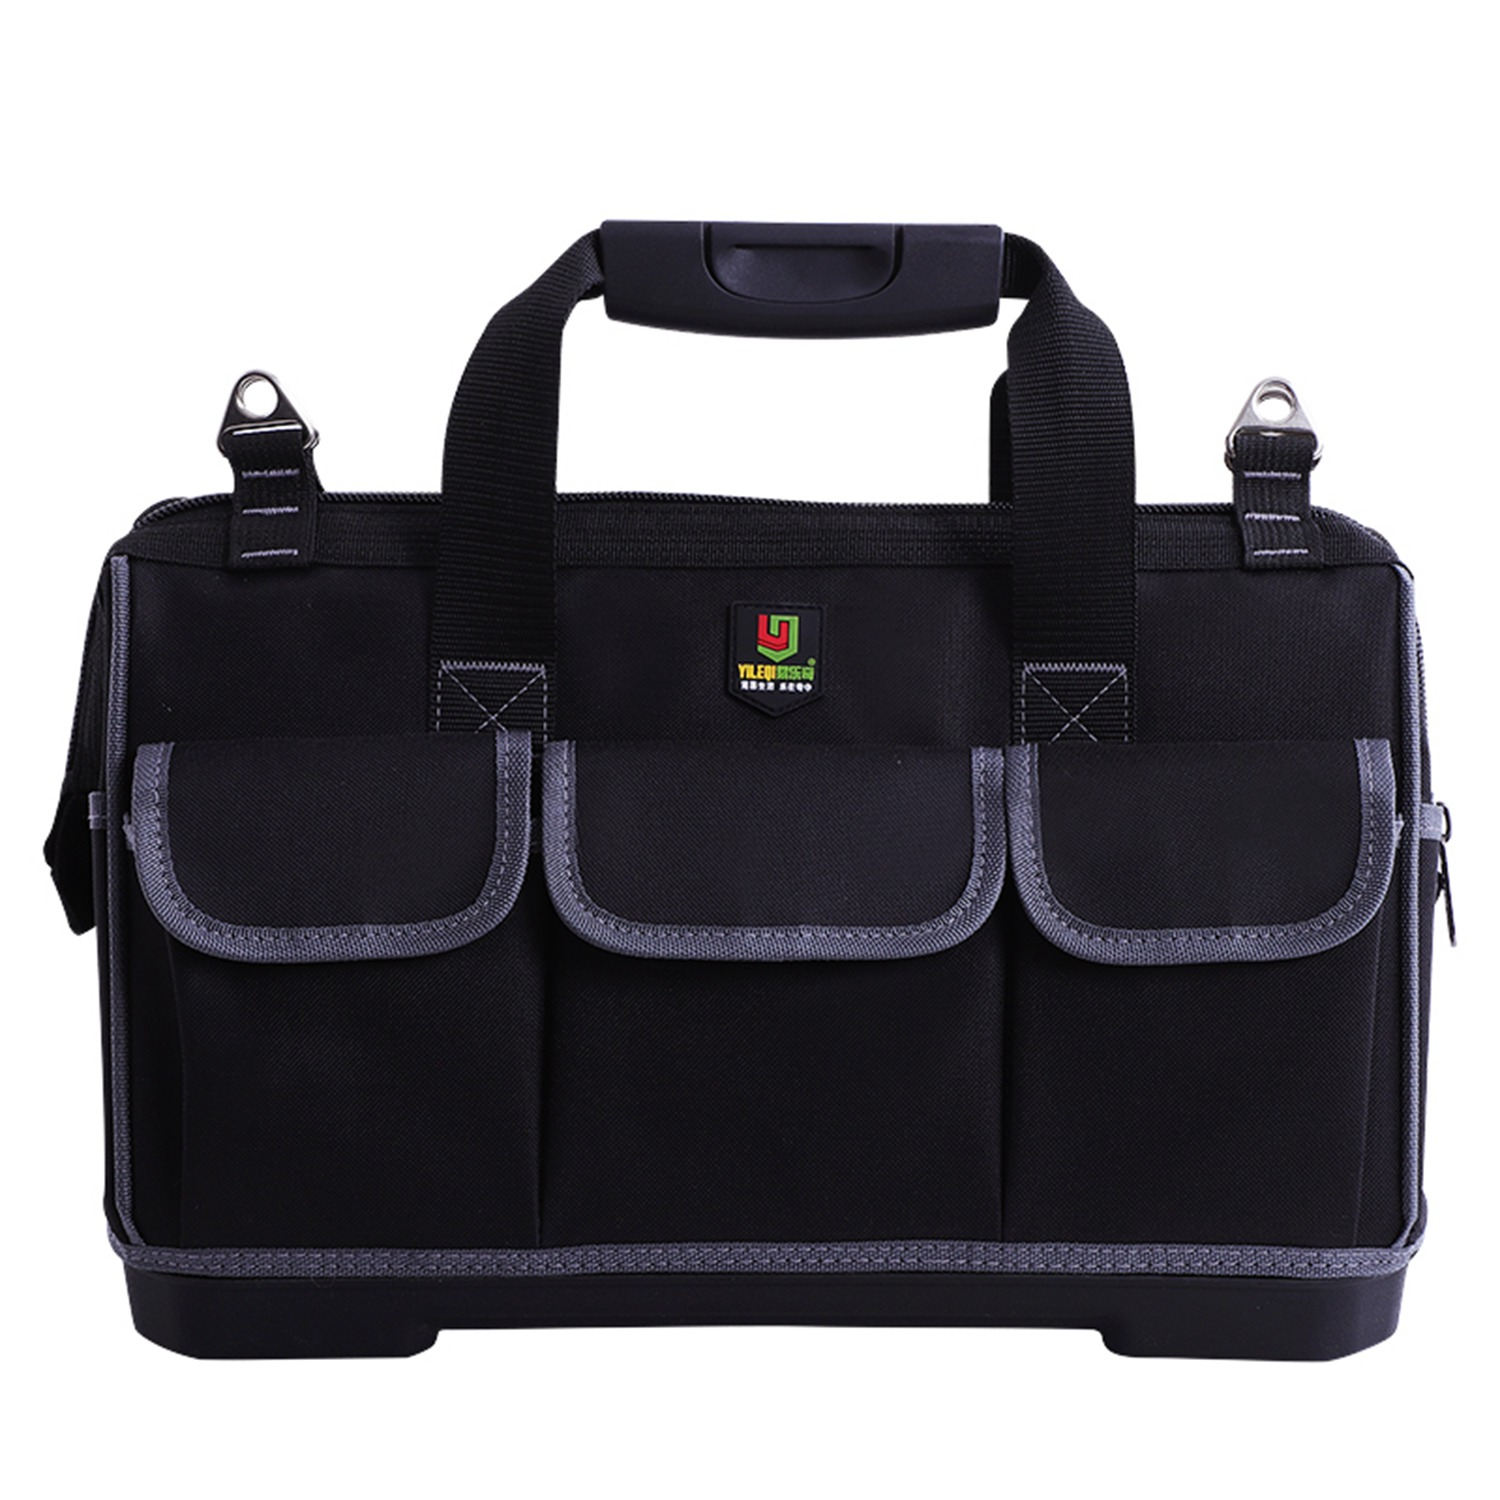 15 inch tool bag 150mm ducting clamp